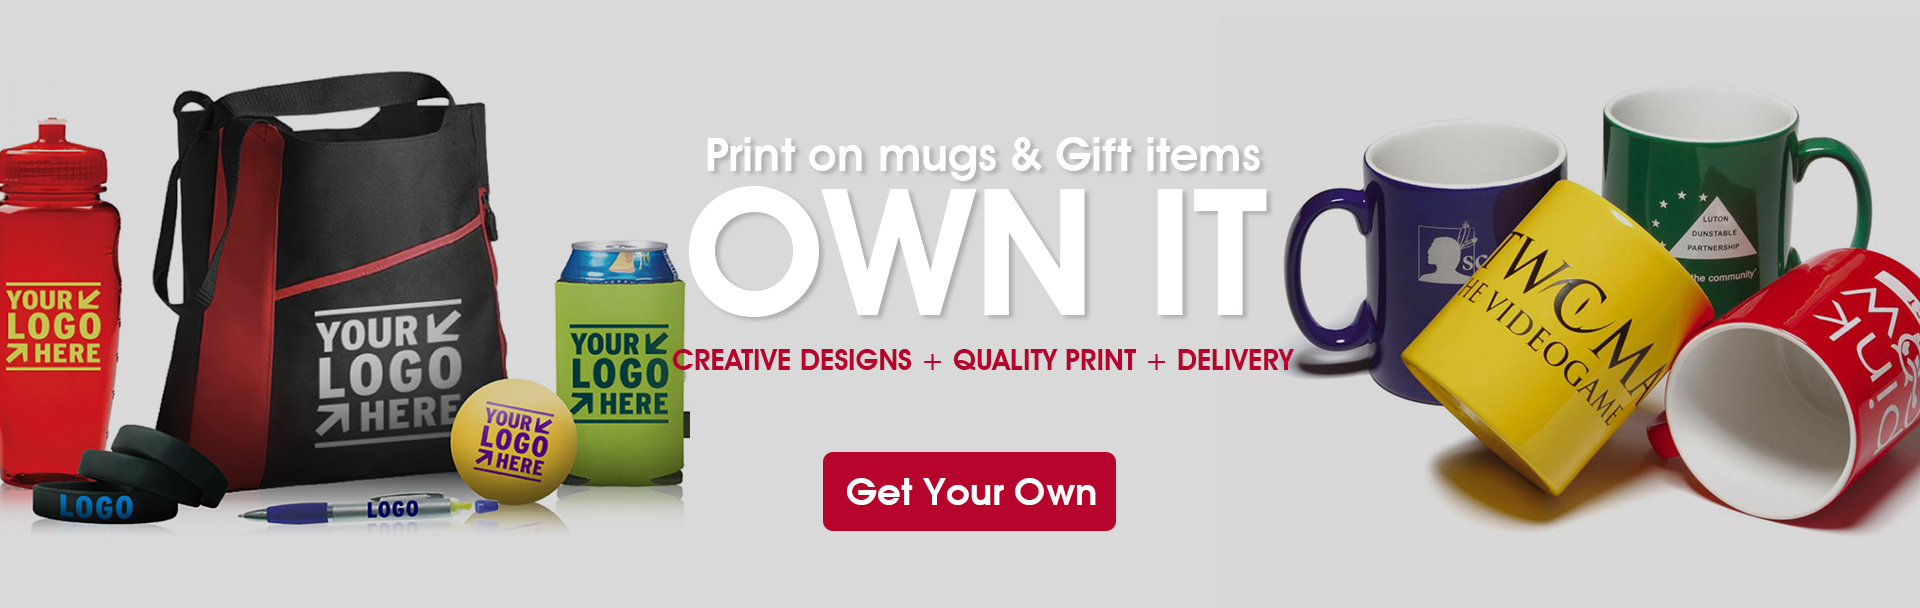 Corporate Gifts Printing in maliwara INDIA